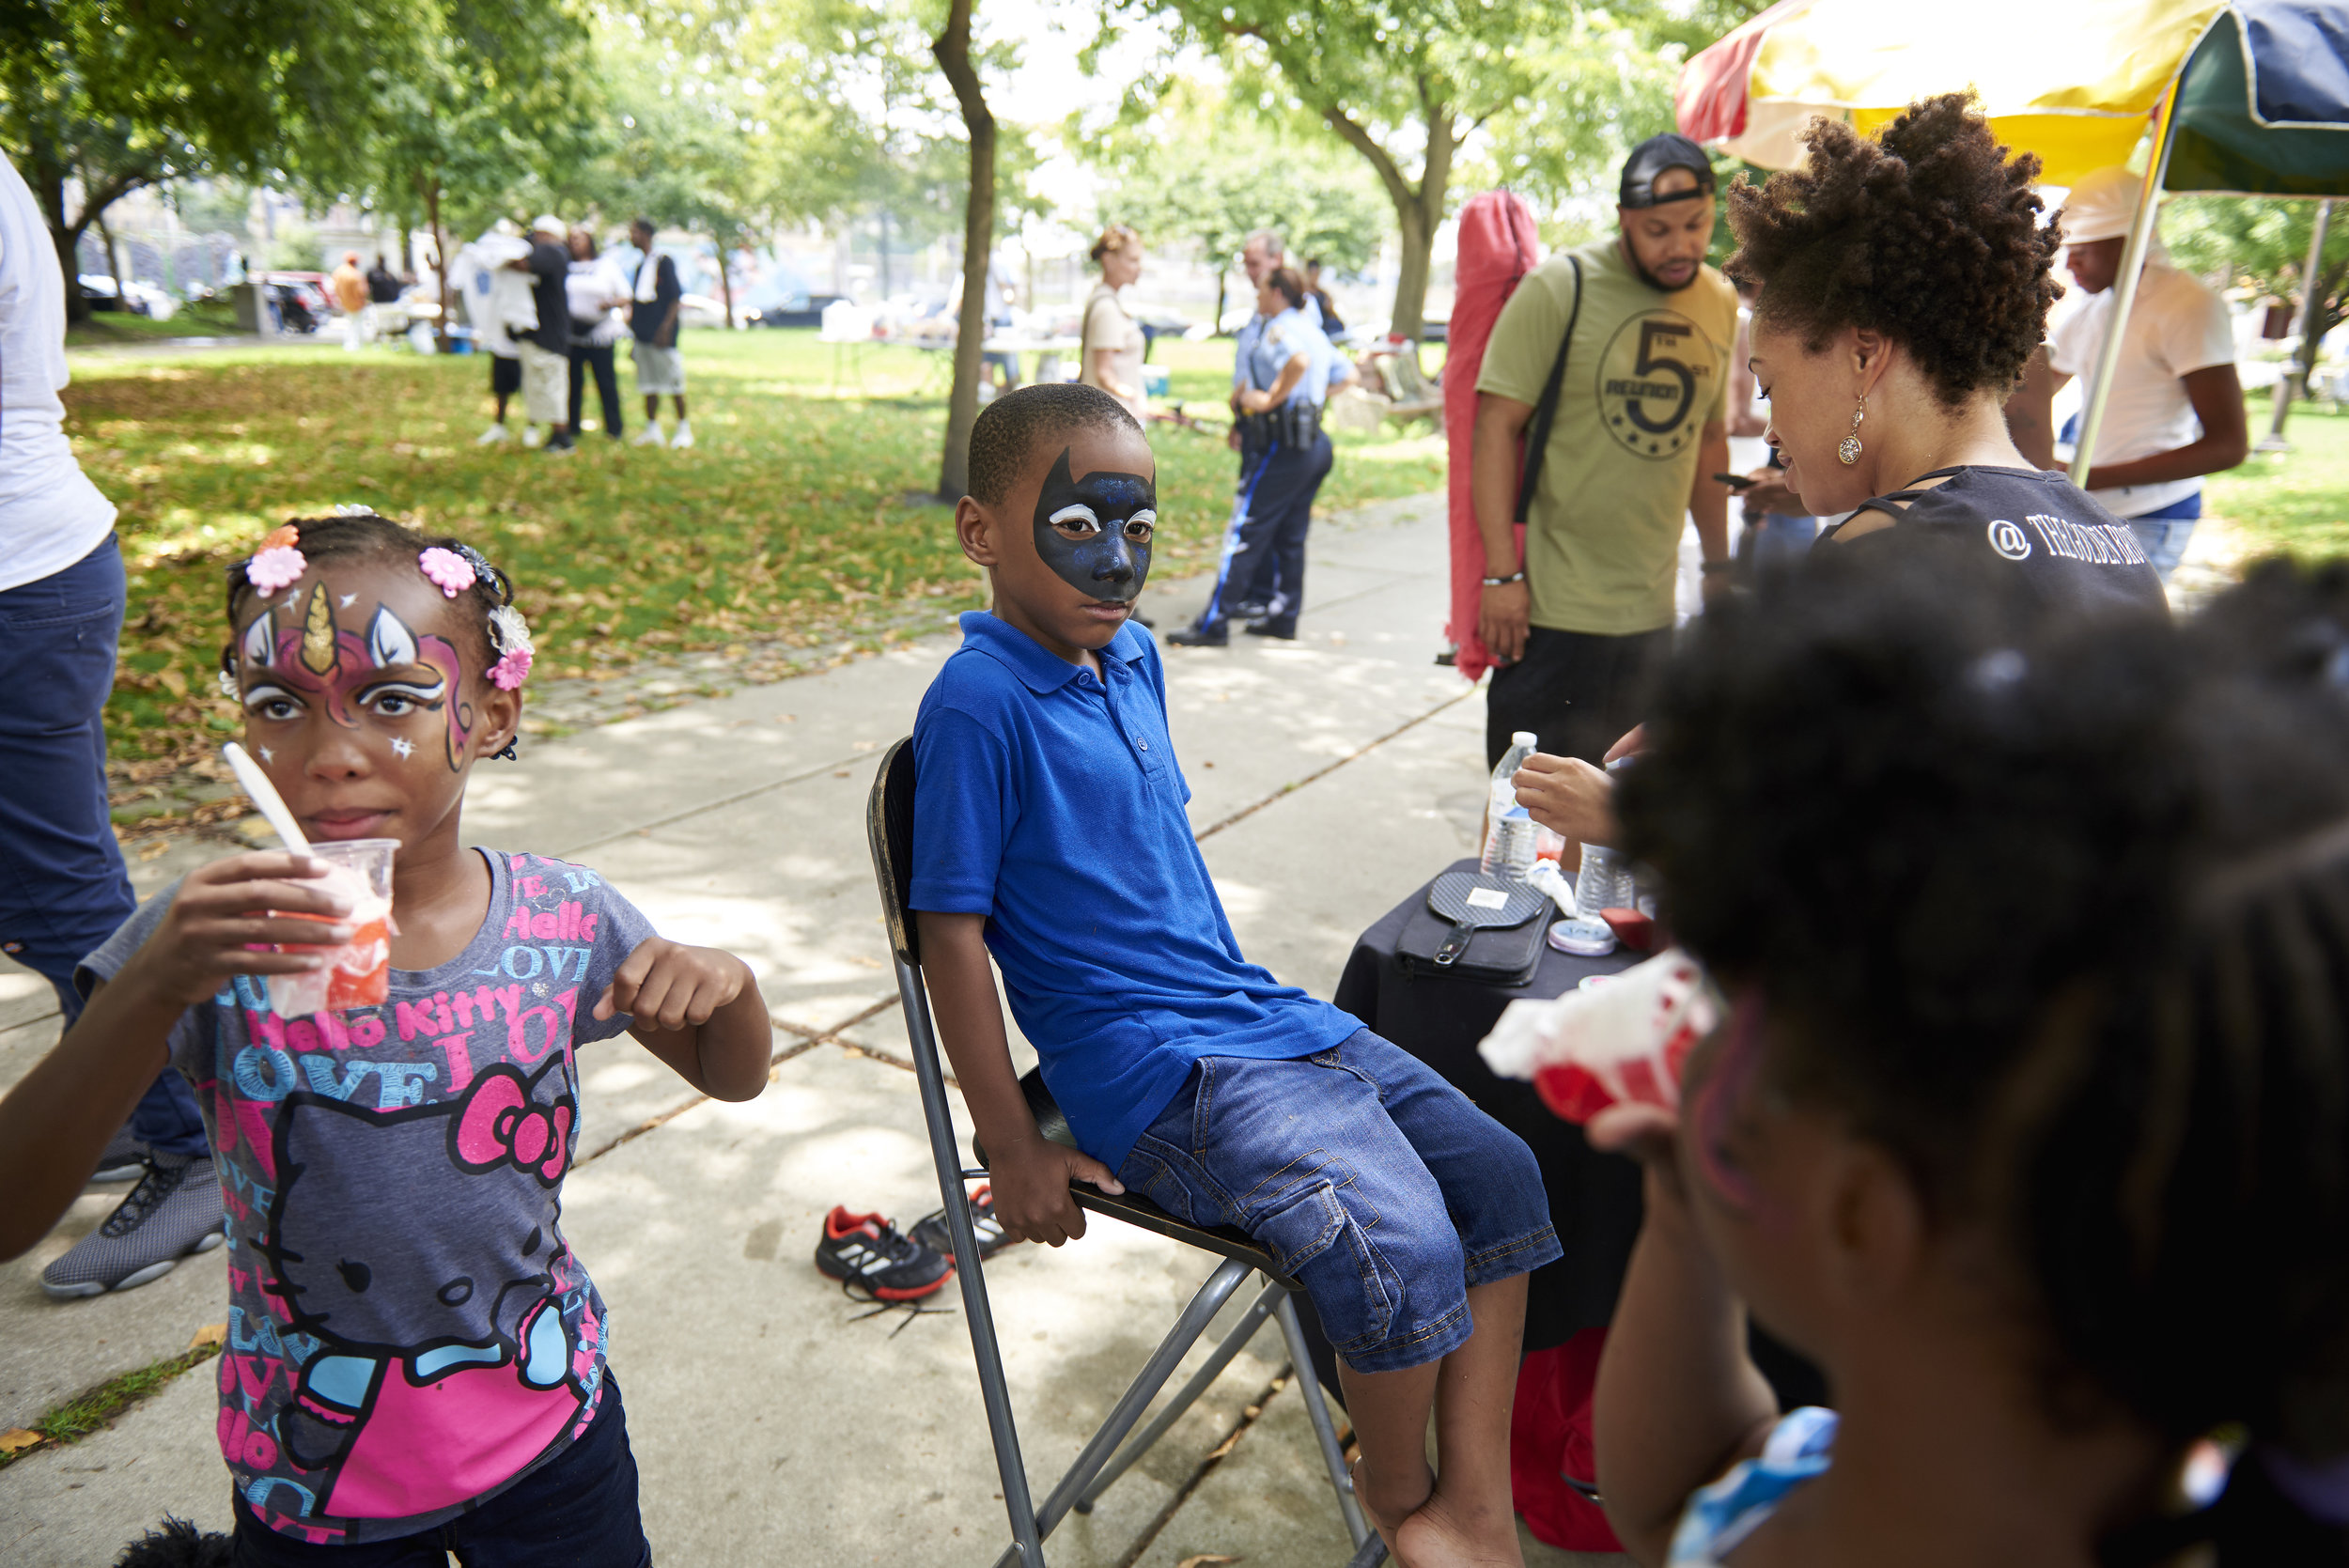 2018 08 04-n piserchio-quran-jefferson square park south philadephia-southwark projects reunion facepainting25 1 1.jpg